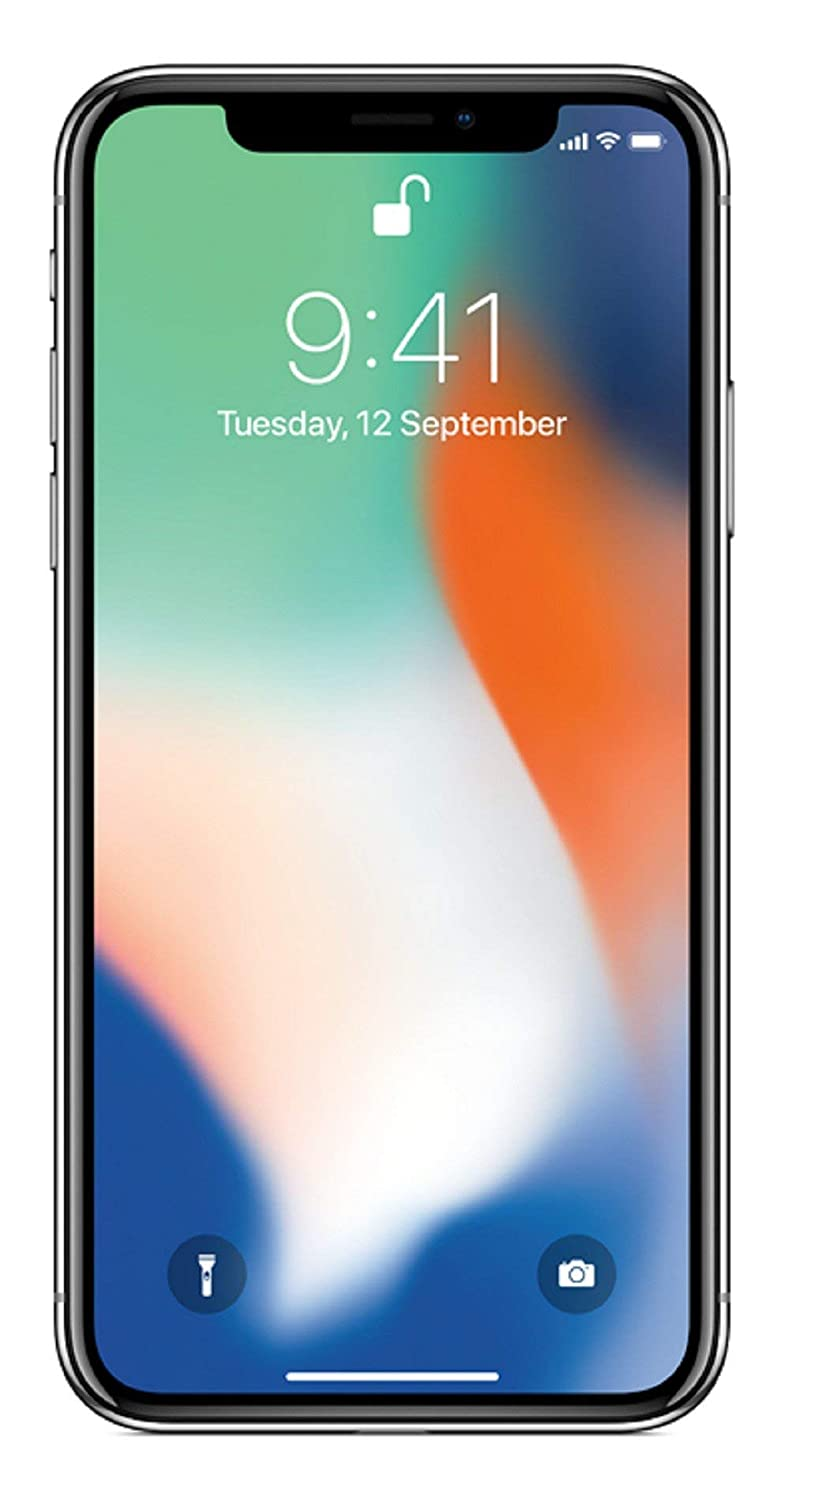 Apple Iphone X Silver 3gb Ram 256gb Storage Electronics Water Box